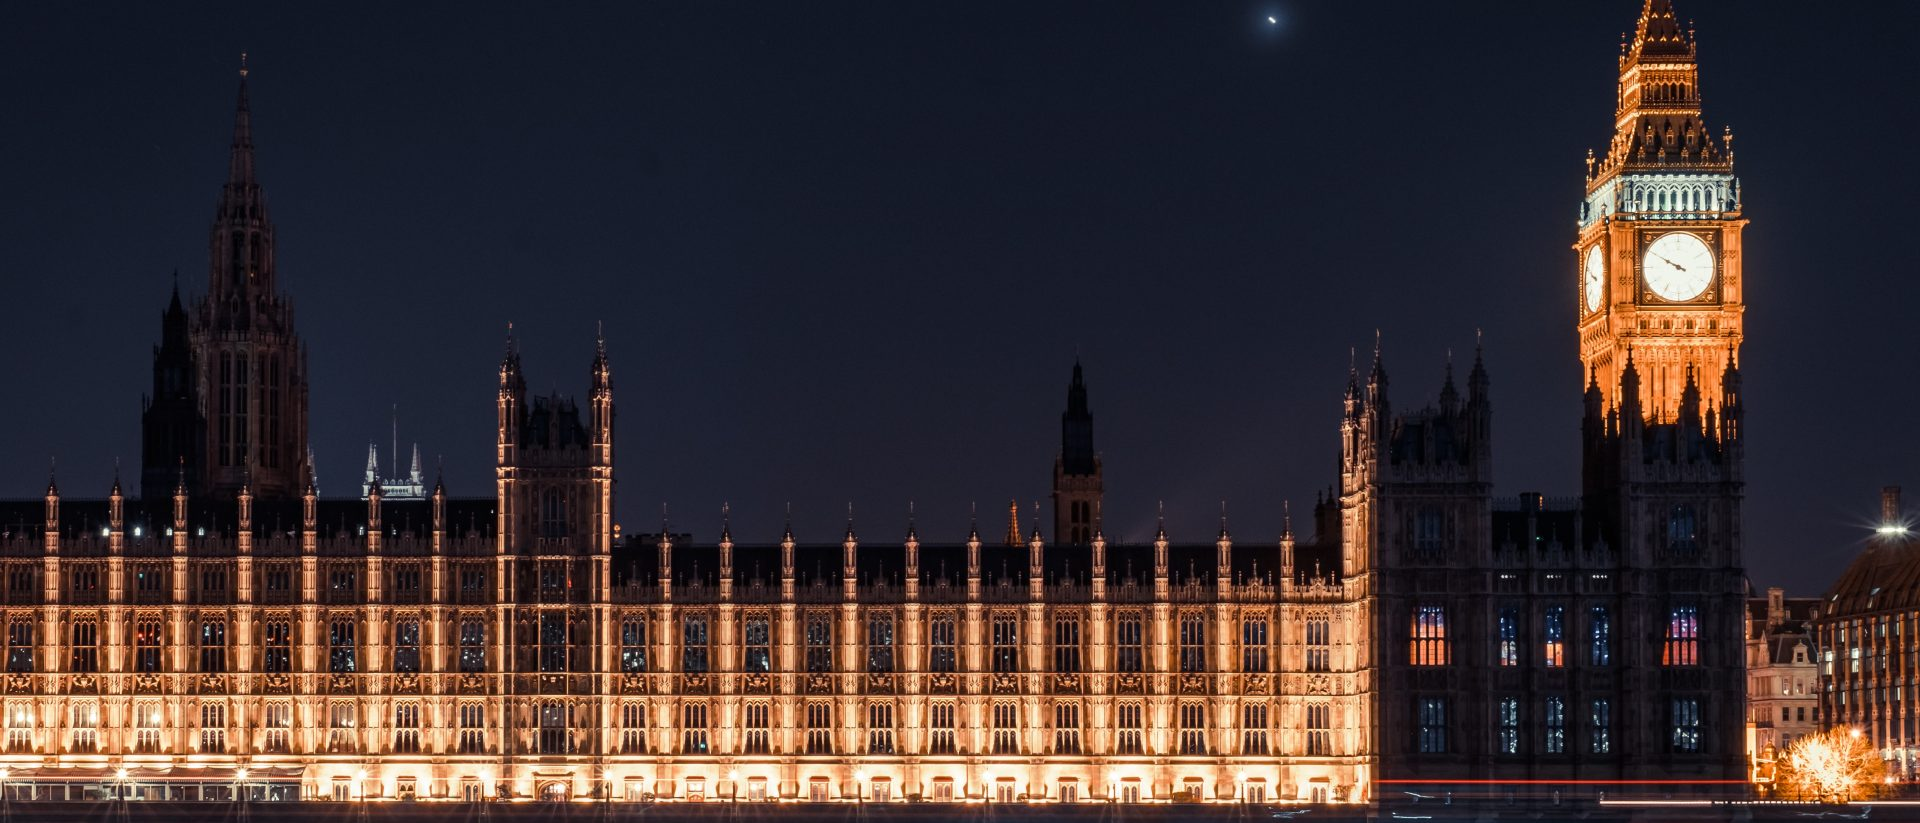 parliament unsplash no cred needed